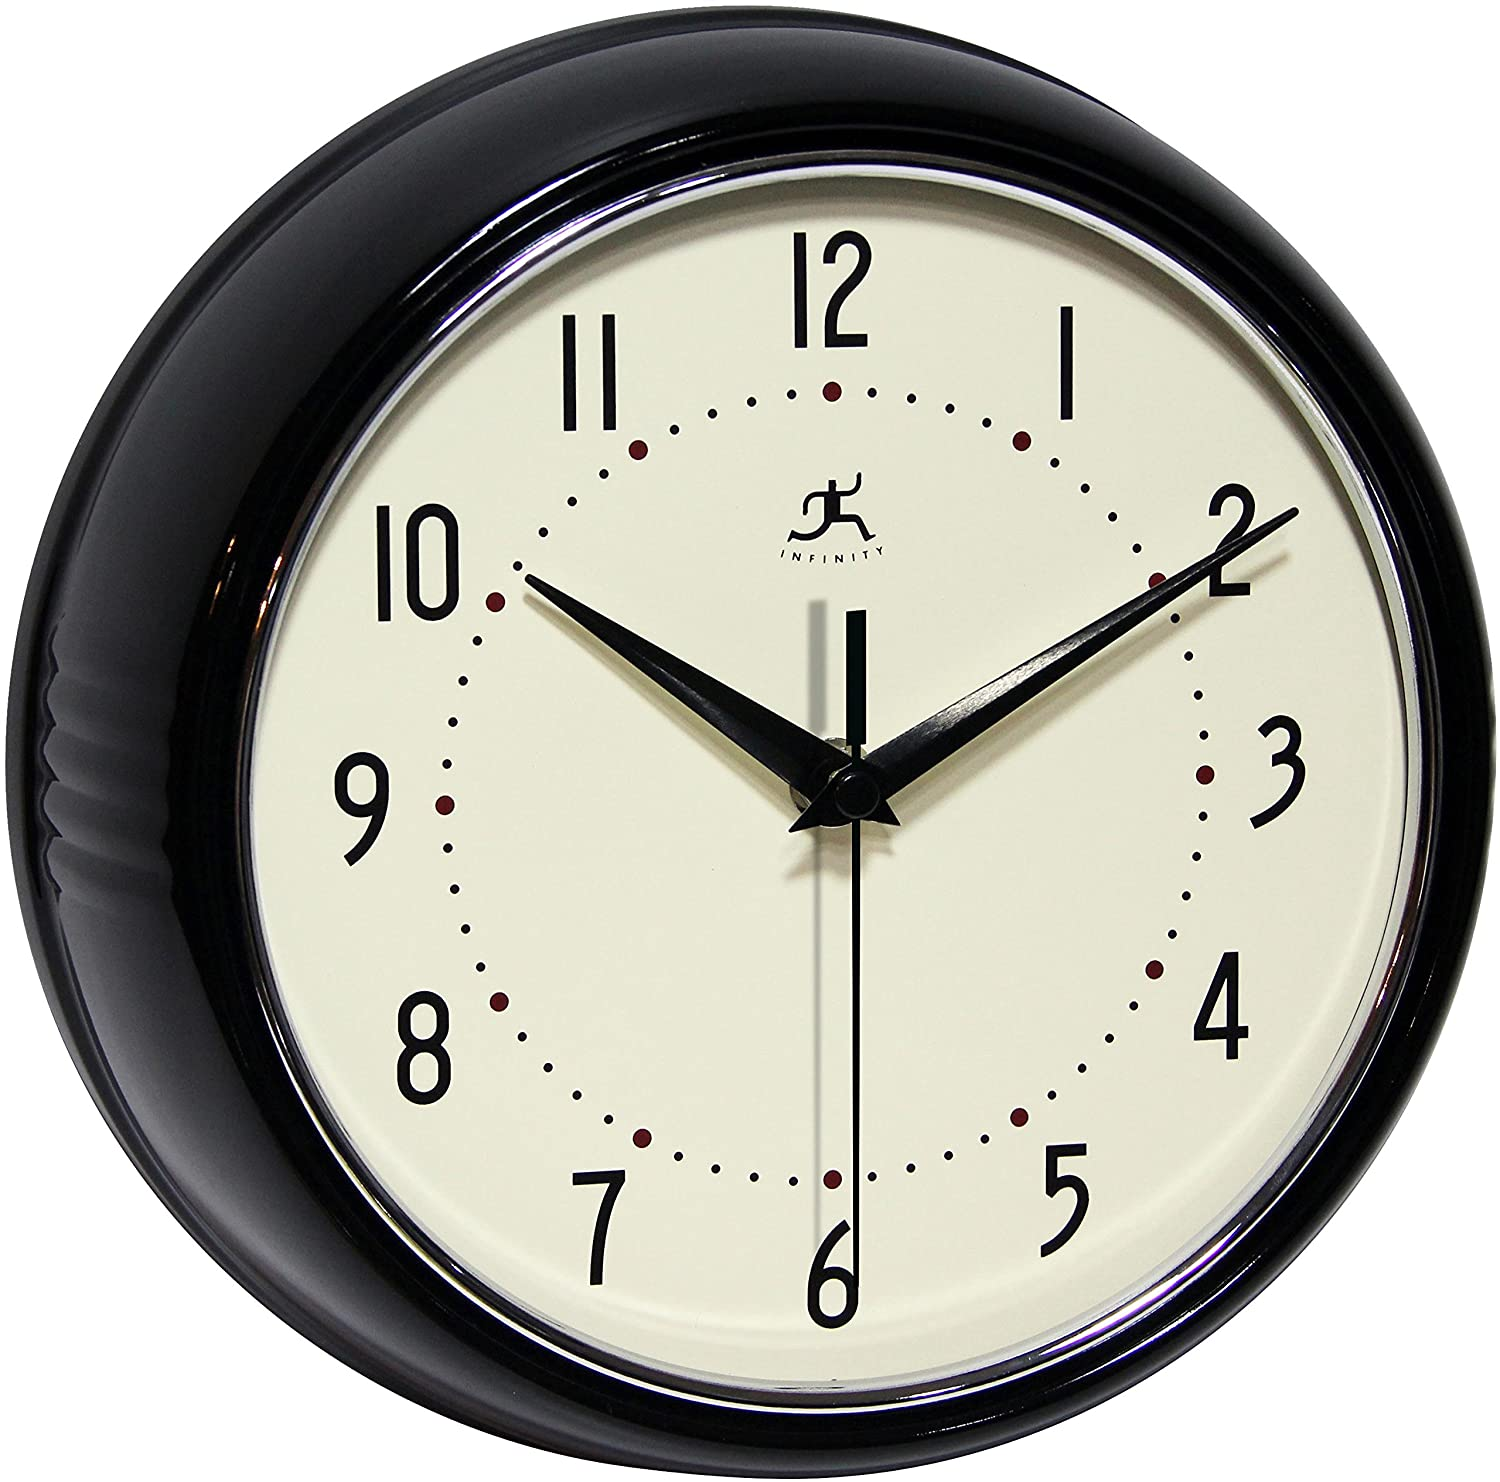 Infinity Instruments Retro Round Metal Wall Clock, Black